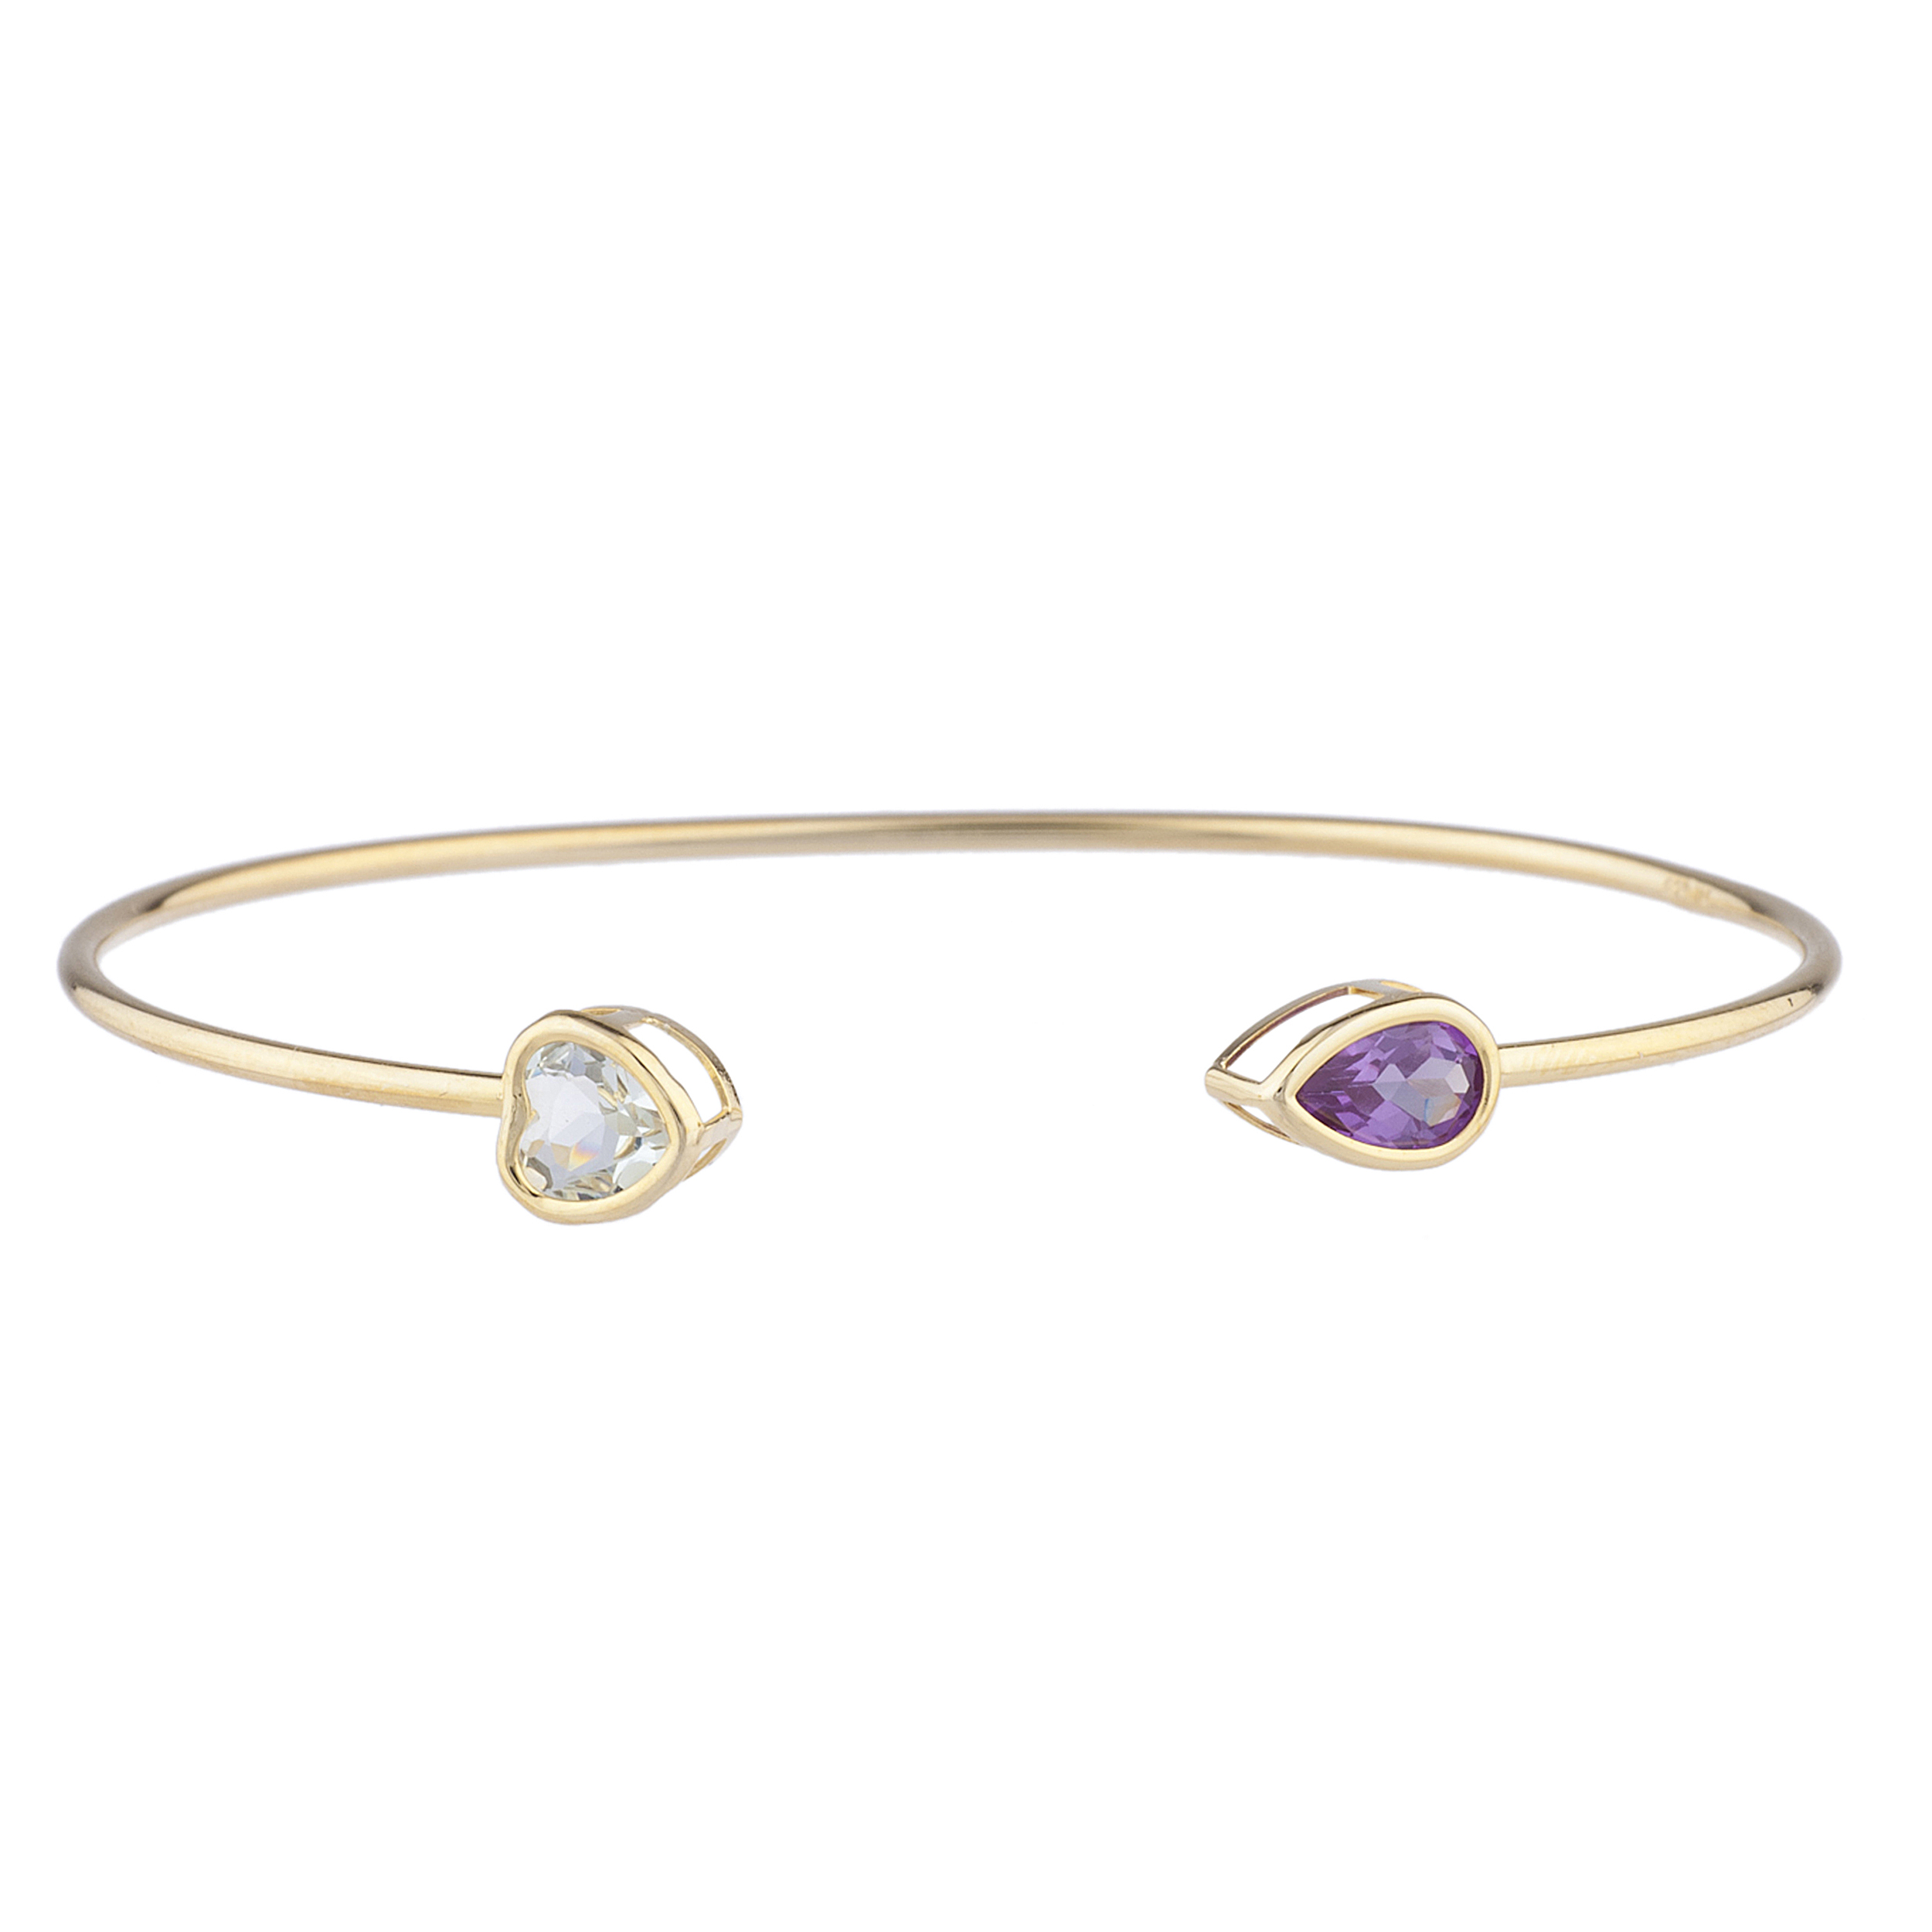 Genuine Aquamarine Heart & Alexandrite Pear Bezel Bangle Bracelet 14Kt Yellow Gold Plated Over .925 Sterling Silver by Elizabeth Jewelry Inc